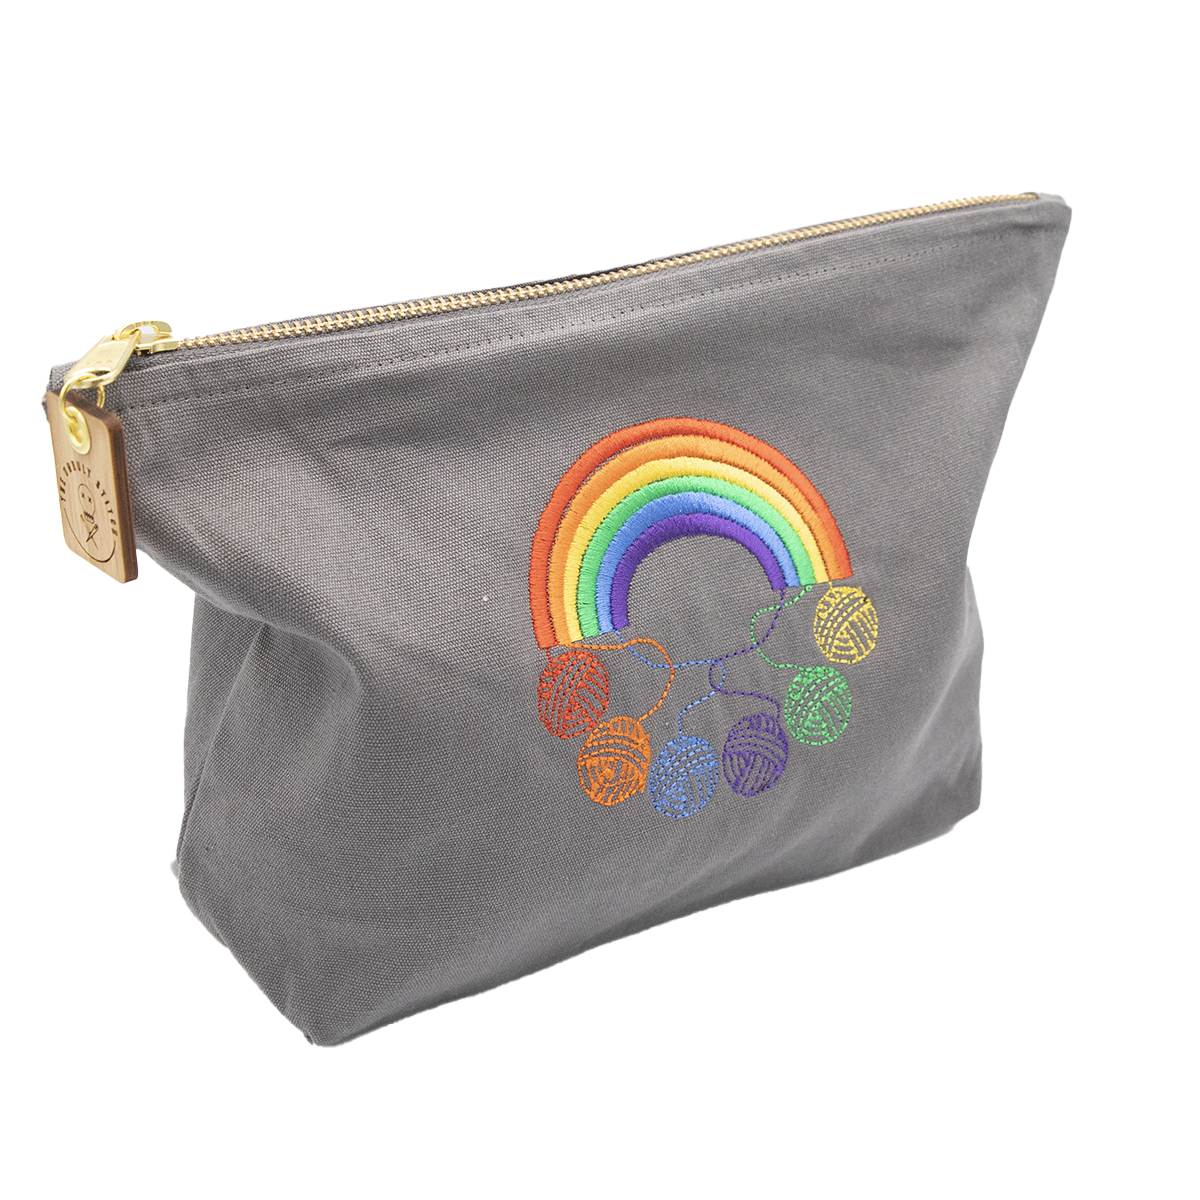 Zipped cotton pouch embroidered with a rainbow and 6 balls of yarn in rainbow colours